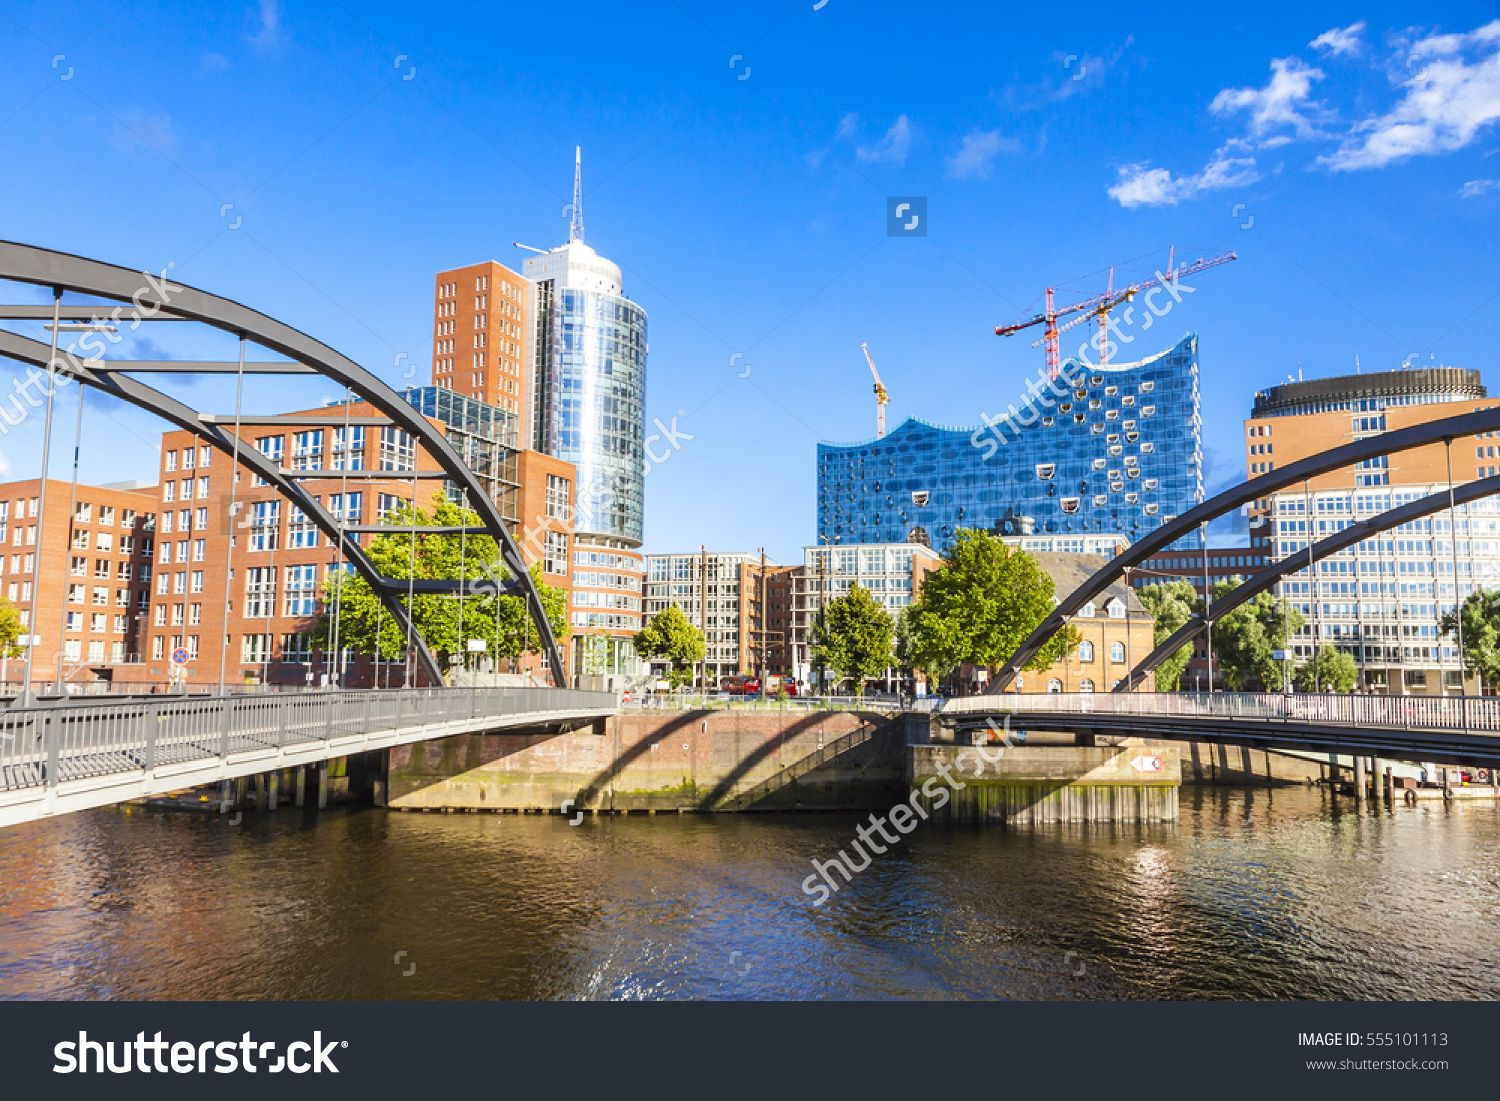 City Of Warehouses District Speicherstadt In Hamburg Building Of Elbphilharmonie Elbe Philharmonic Hall On Background Ni Warehouse District Building City